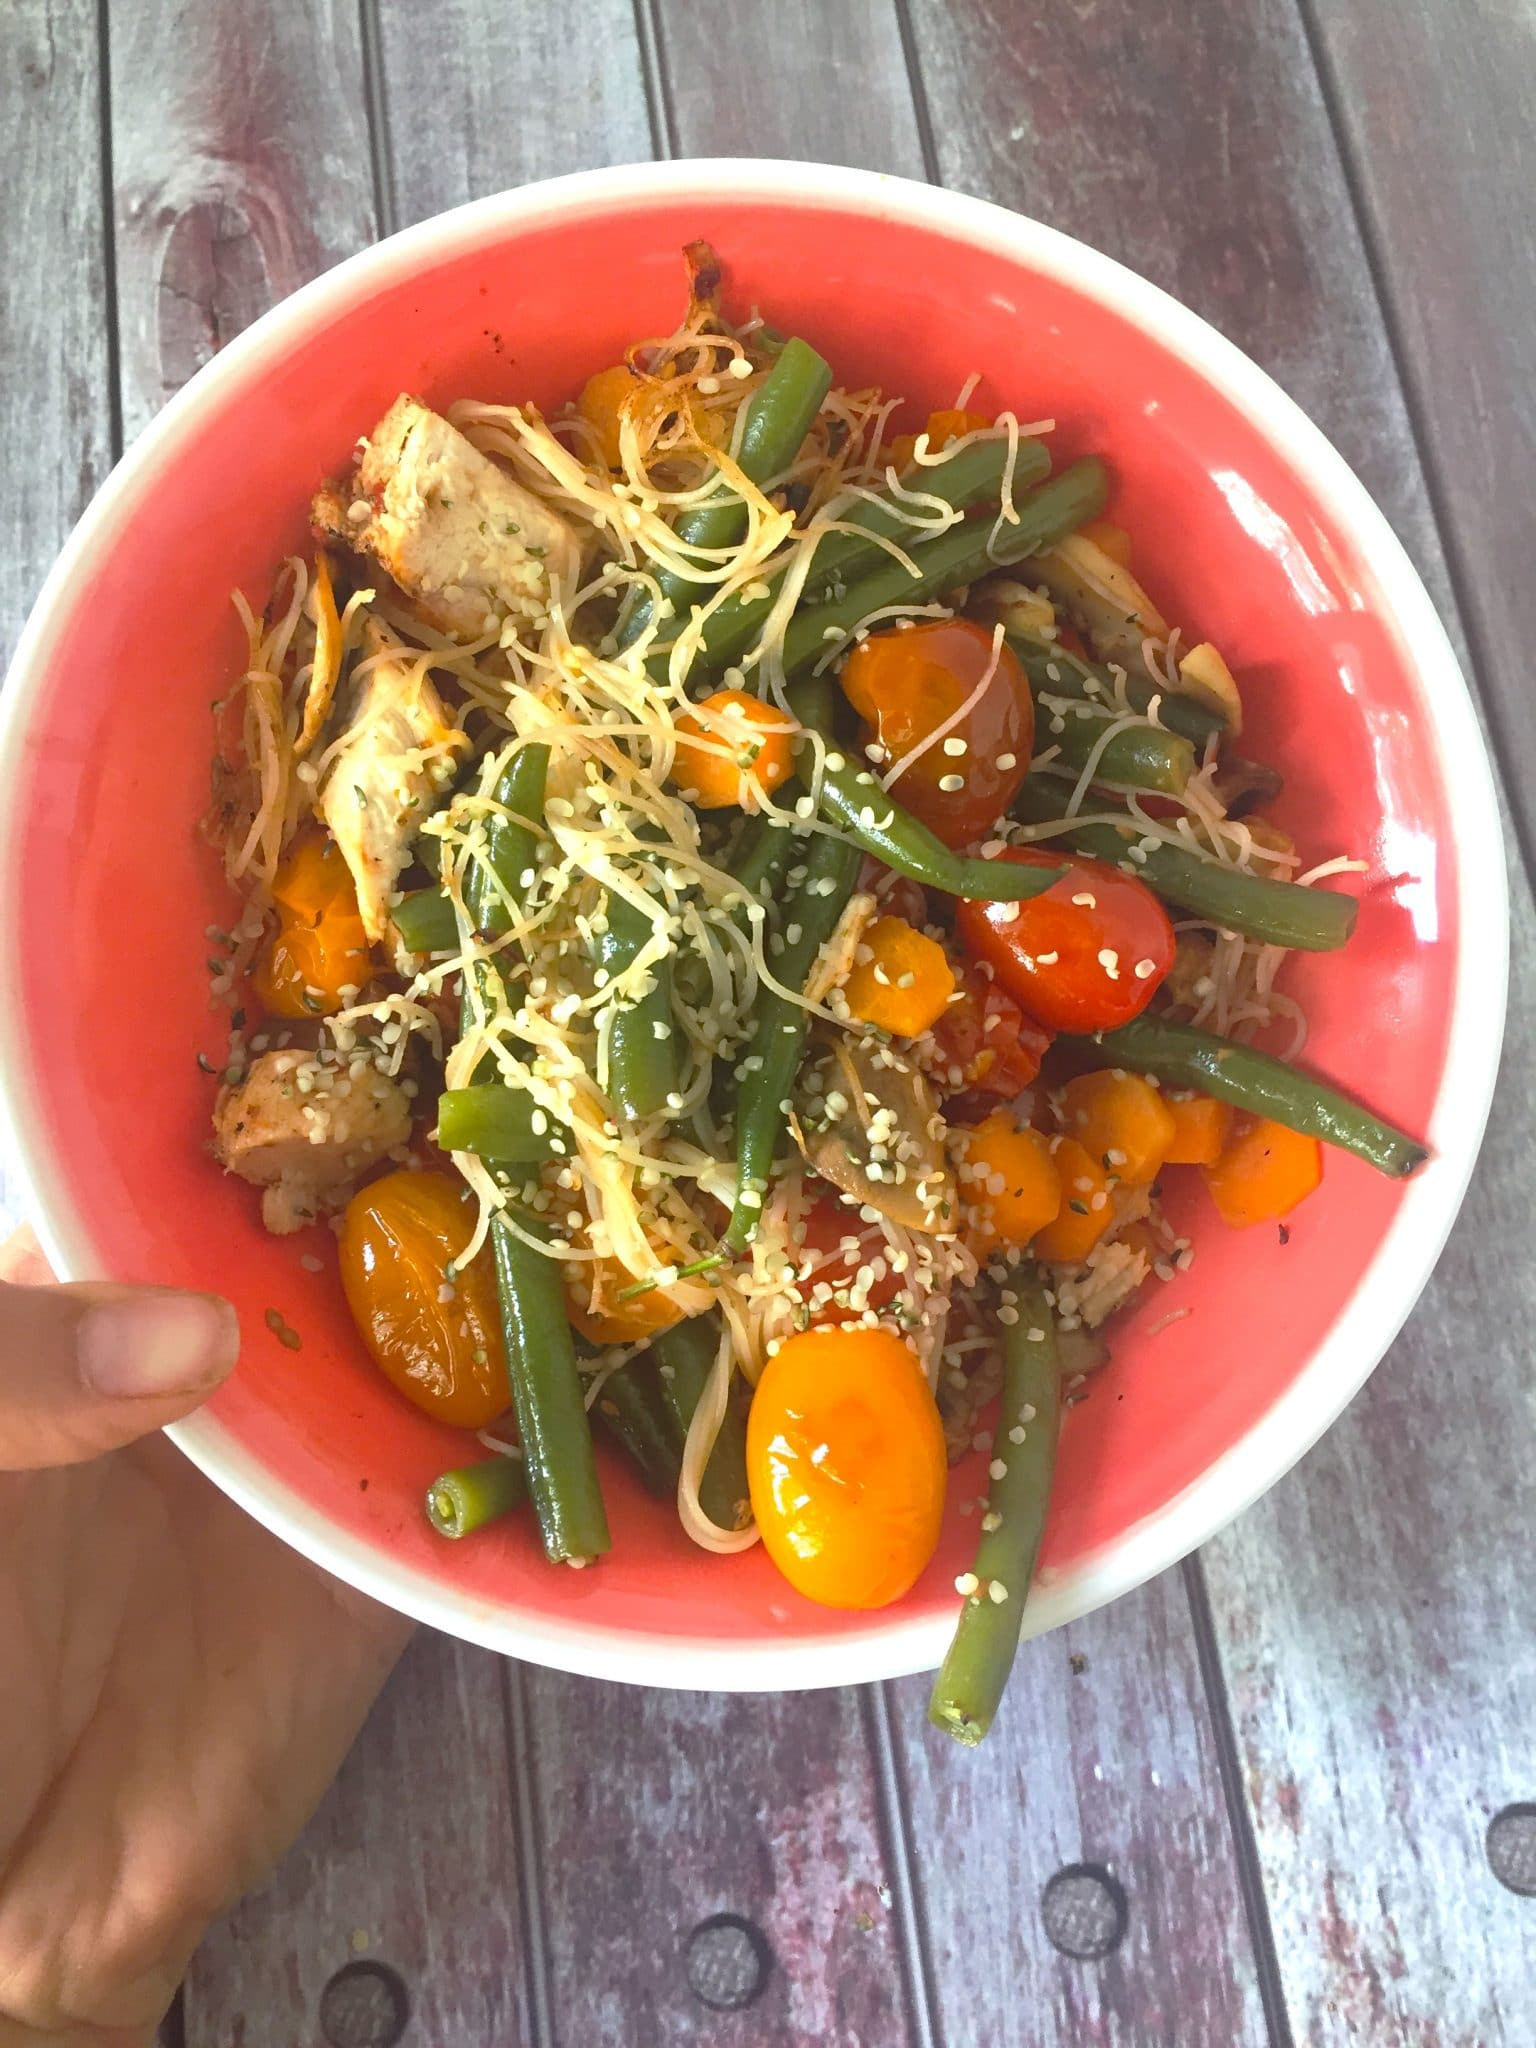 A red bowl with noodles, tomatoes and snap peas mixed together for lunch